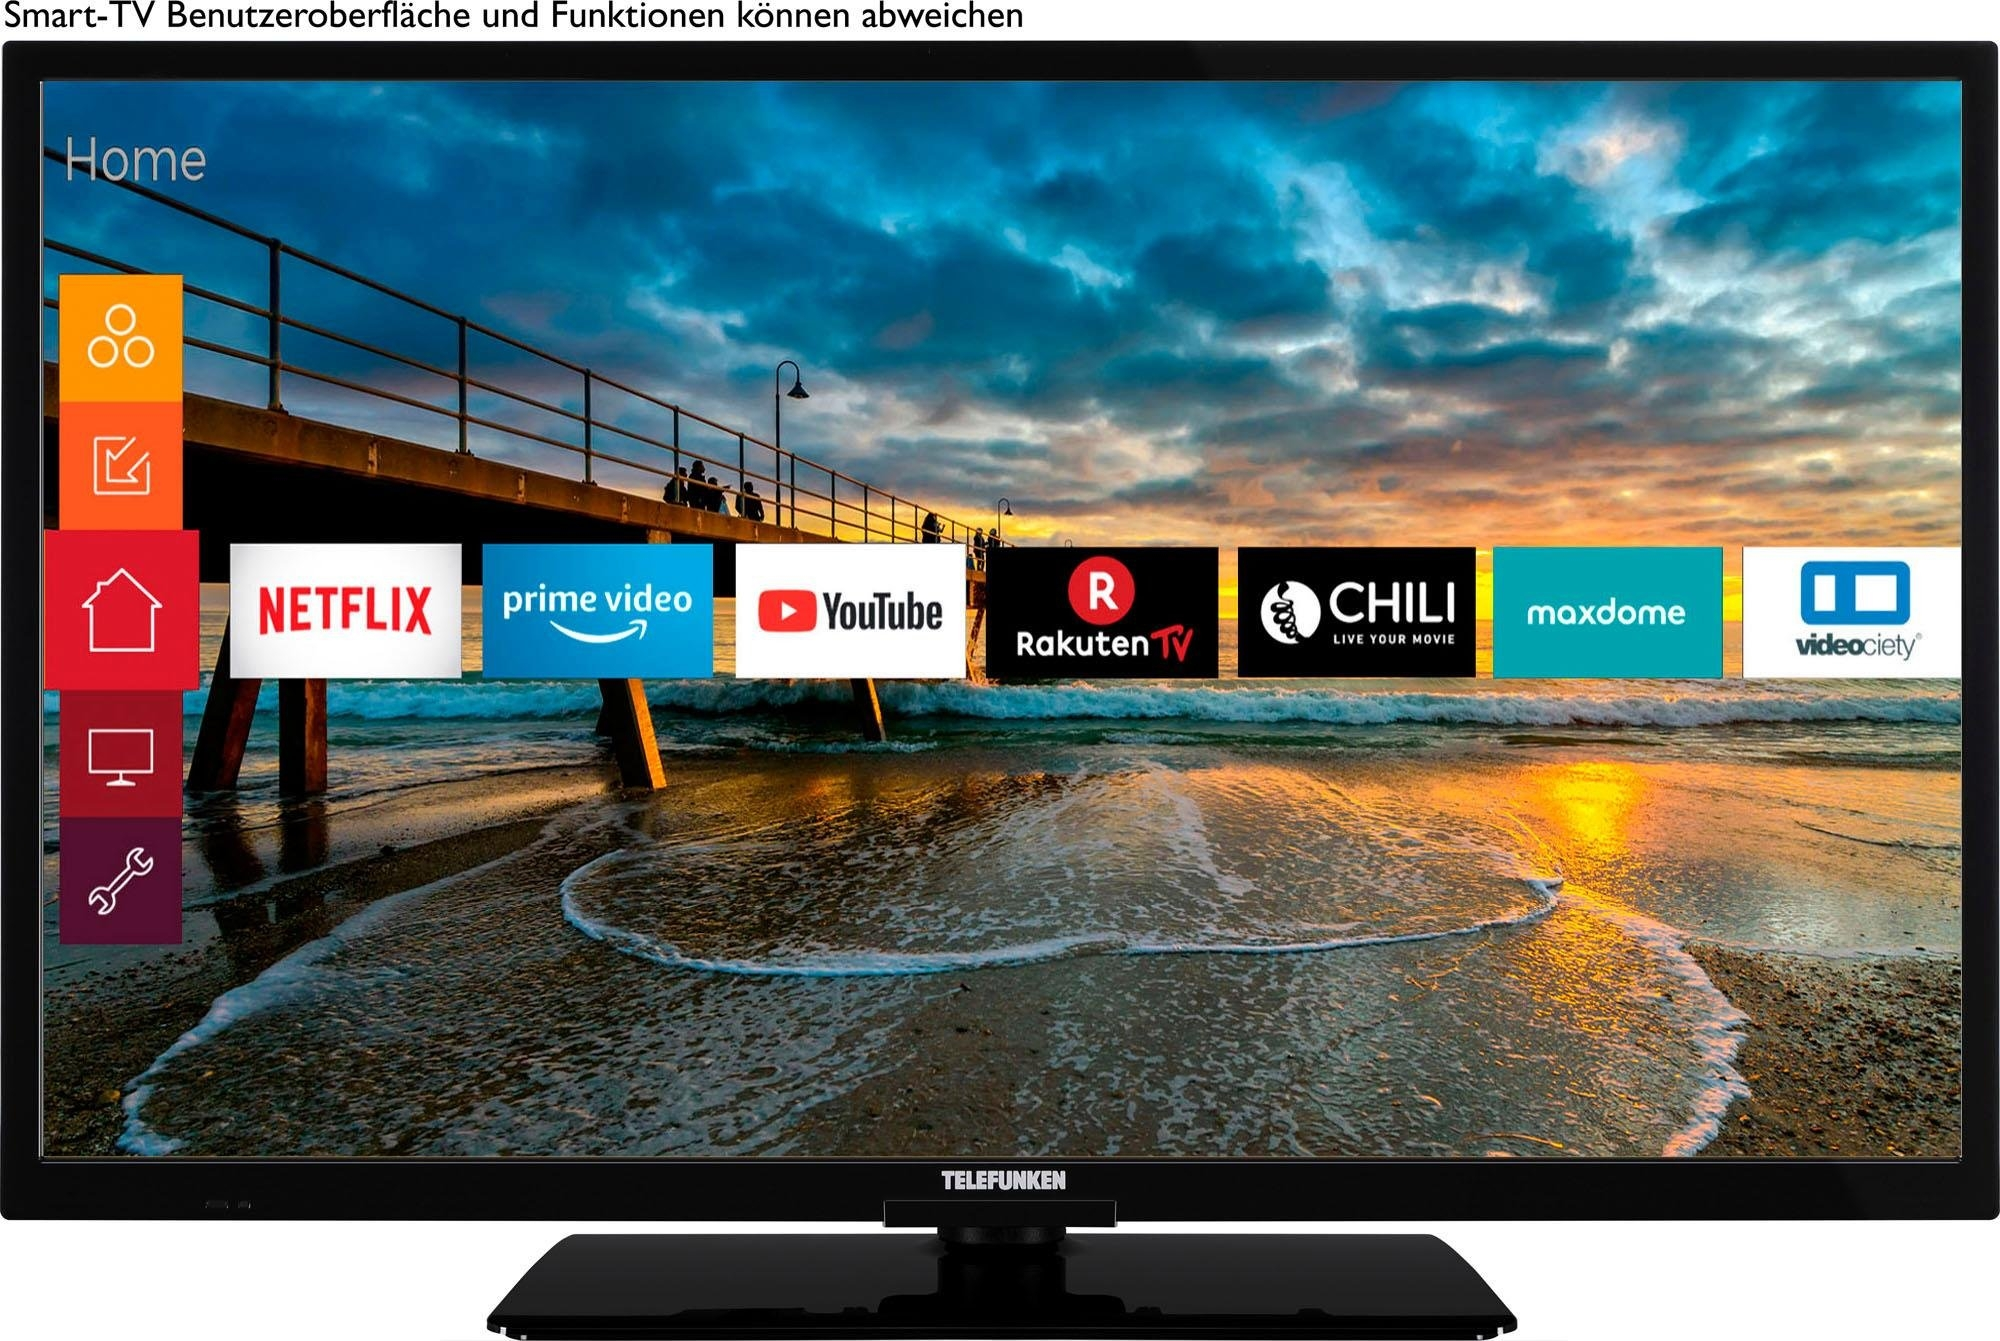 Telefunken OS-32H400 led-tv (80 cm / 32 inch), HD-ready, smart-tv - gratis ruilen op otto.nl